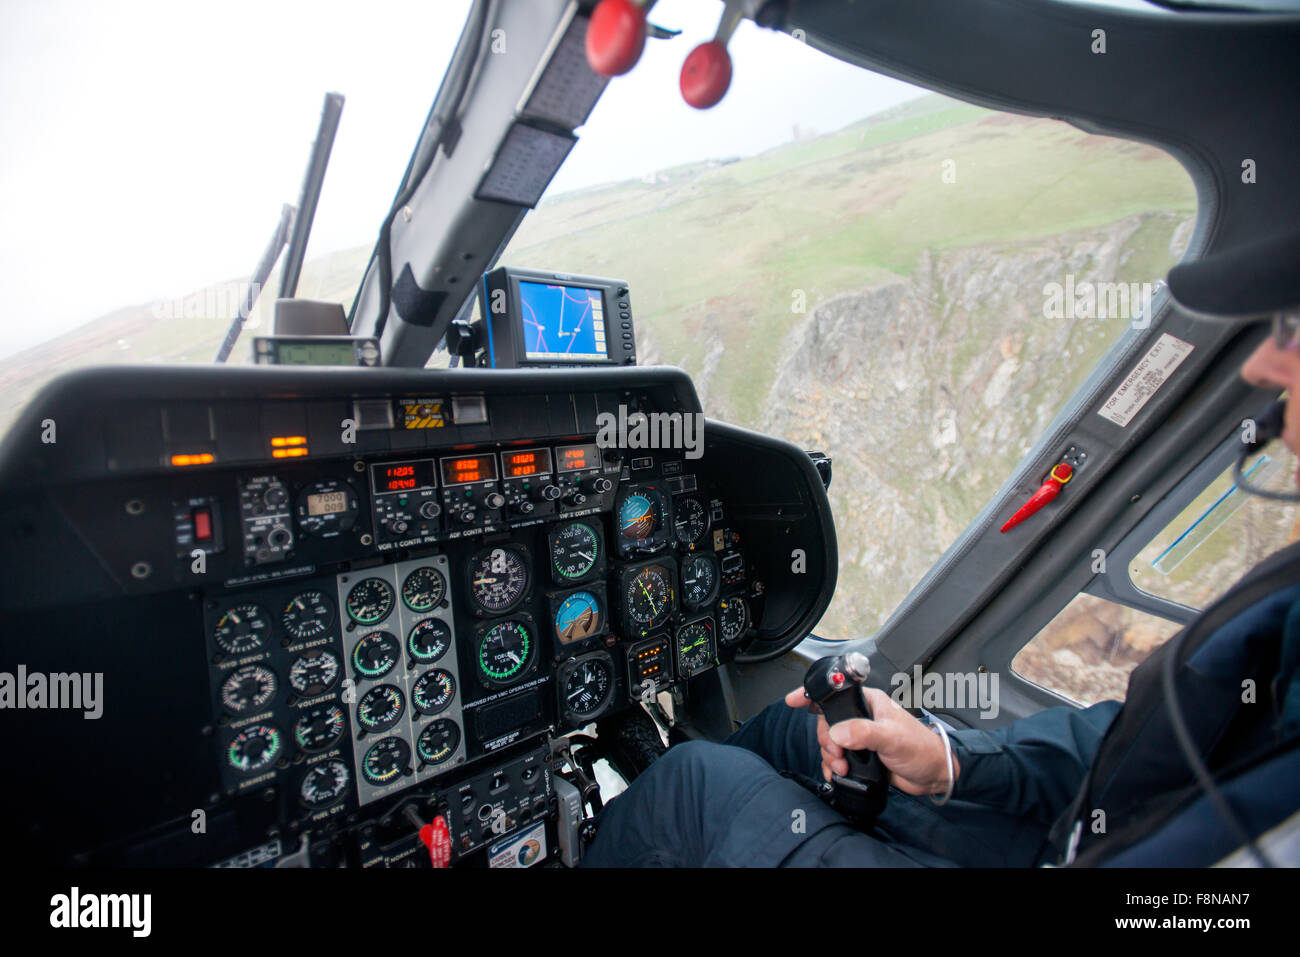 in the cockpit of a helicopter flying from the mainland to Lundy Island - te cliffs of Lundy through the window - Stock Image